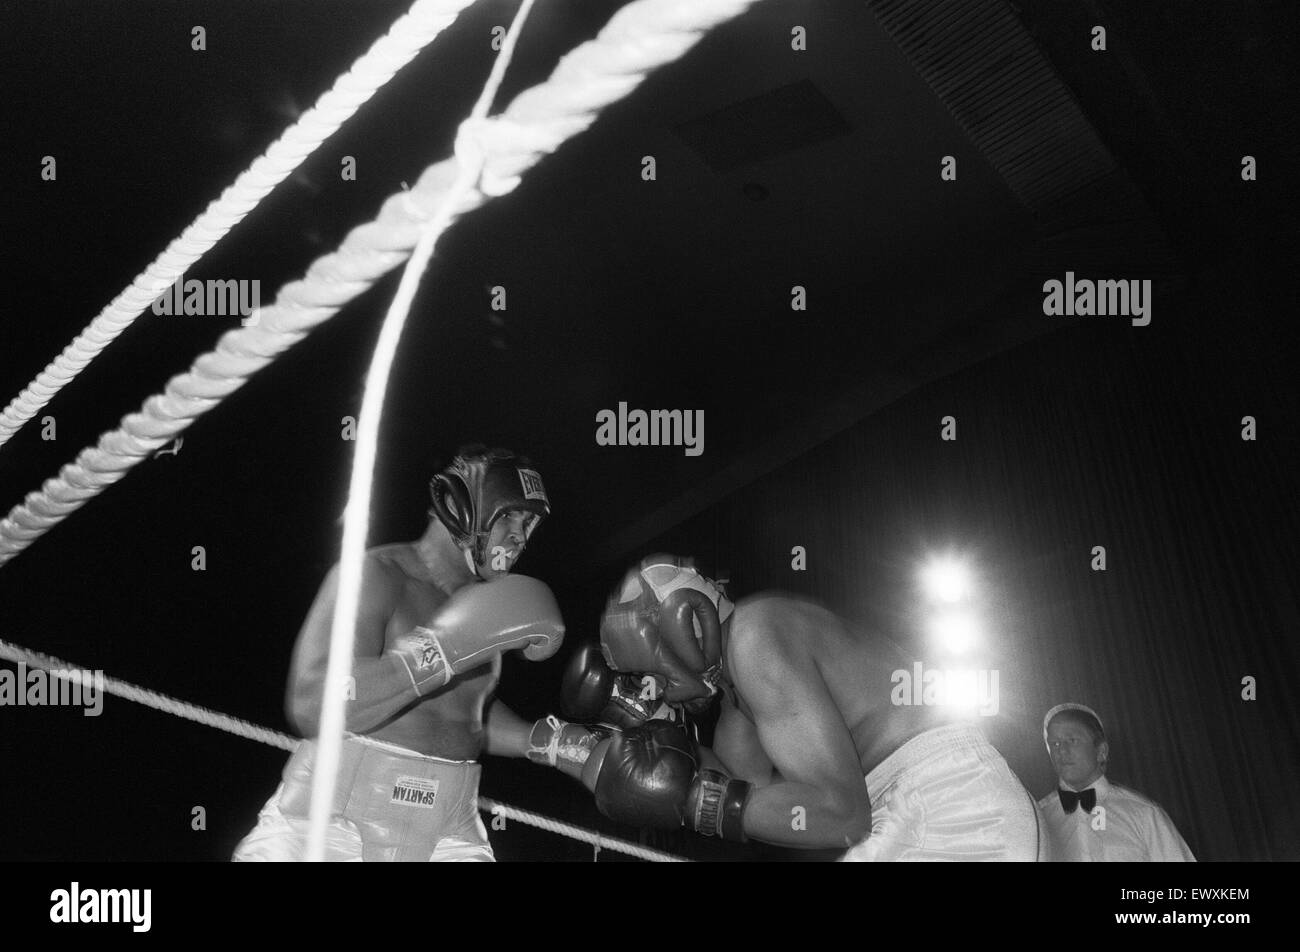 Muhammad Ali at boxing exhibition match in Birmingham. 7th June 1979 - Stock Image